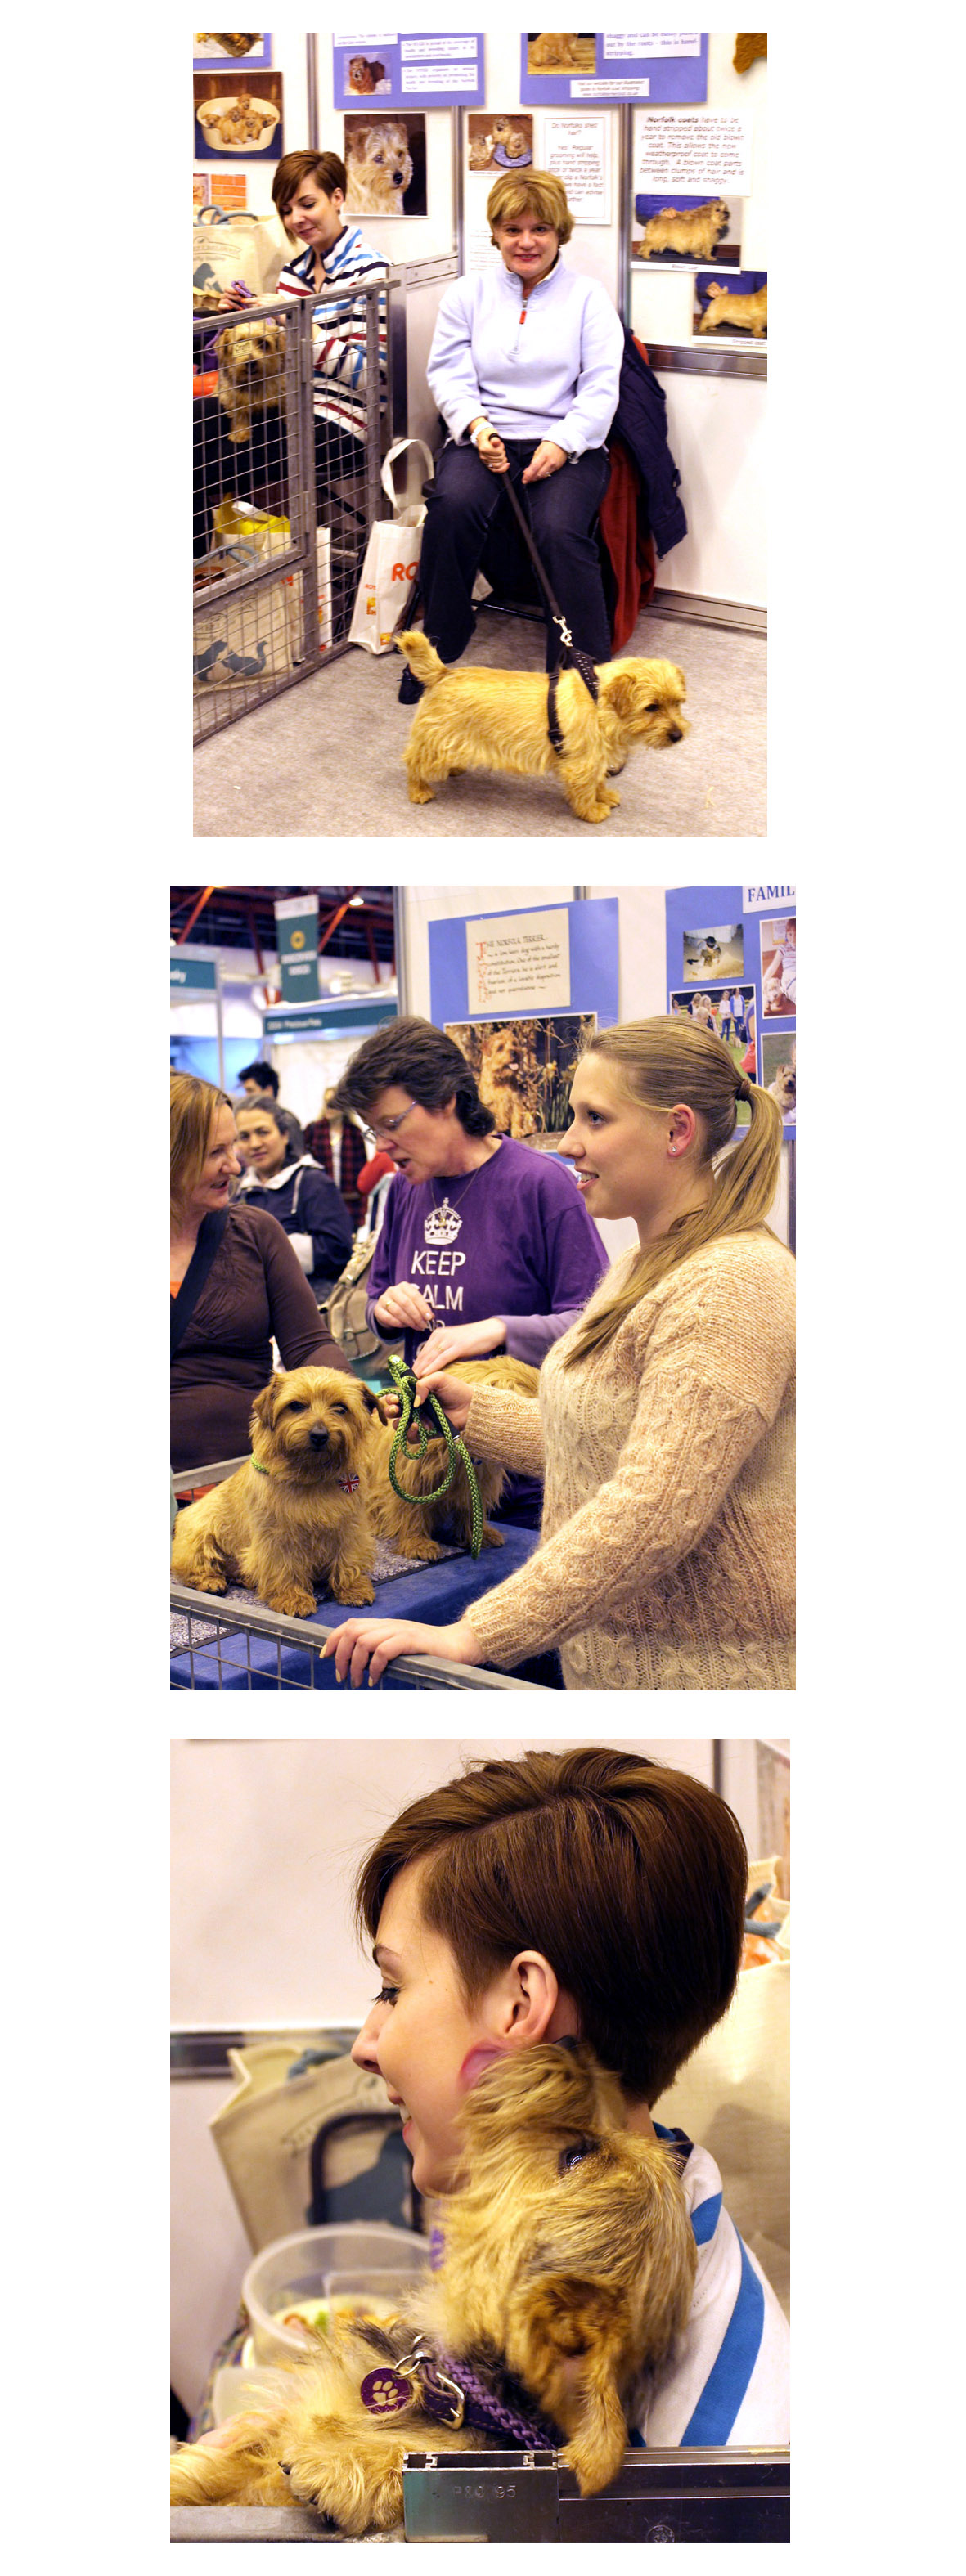 Discover Dogs London Pet Show 2013